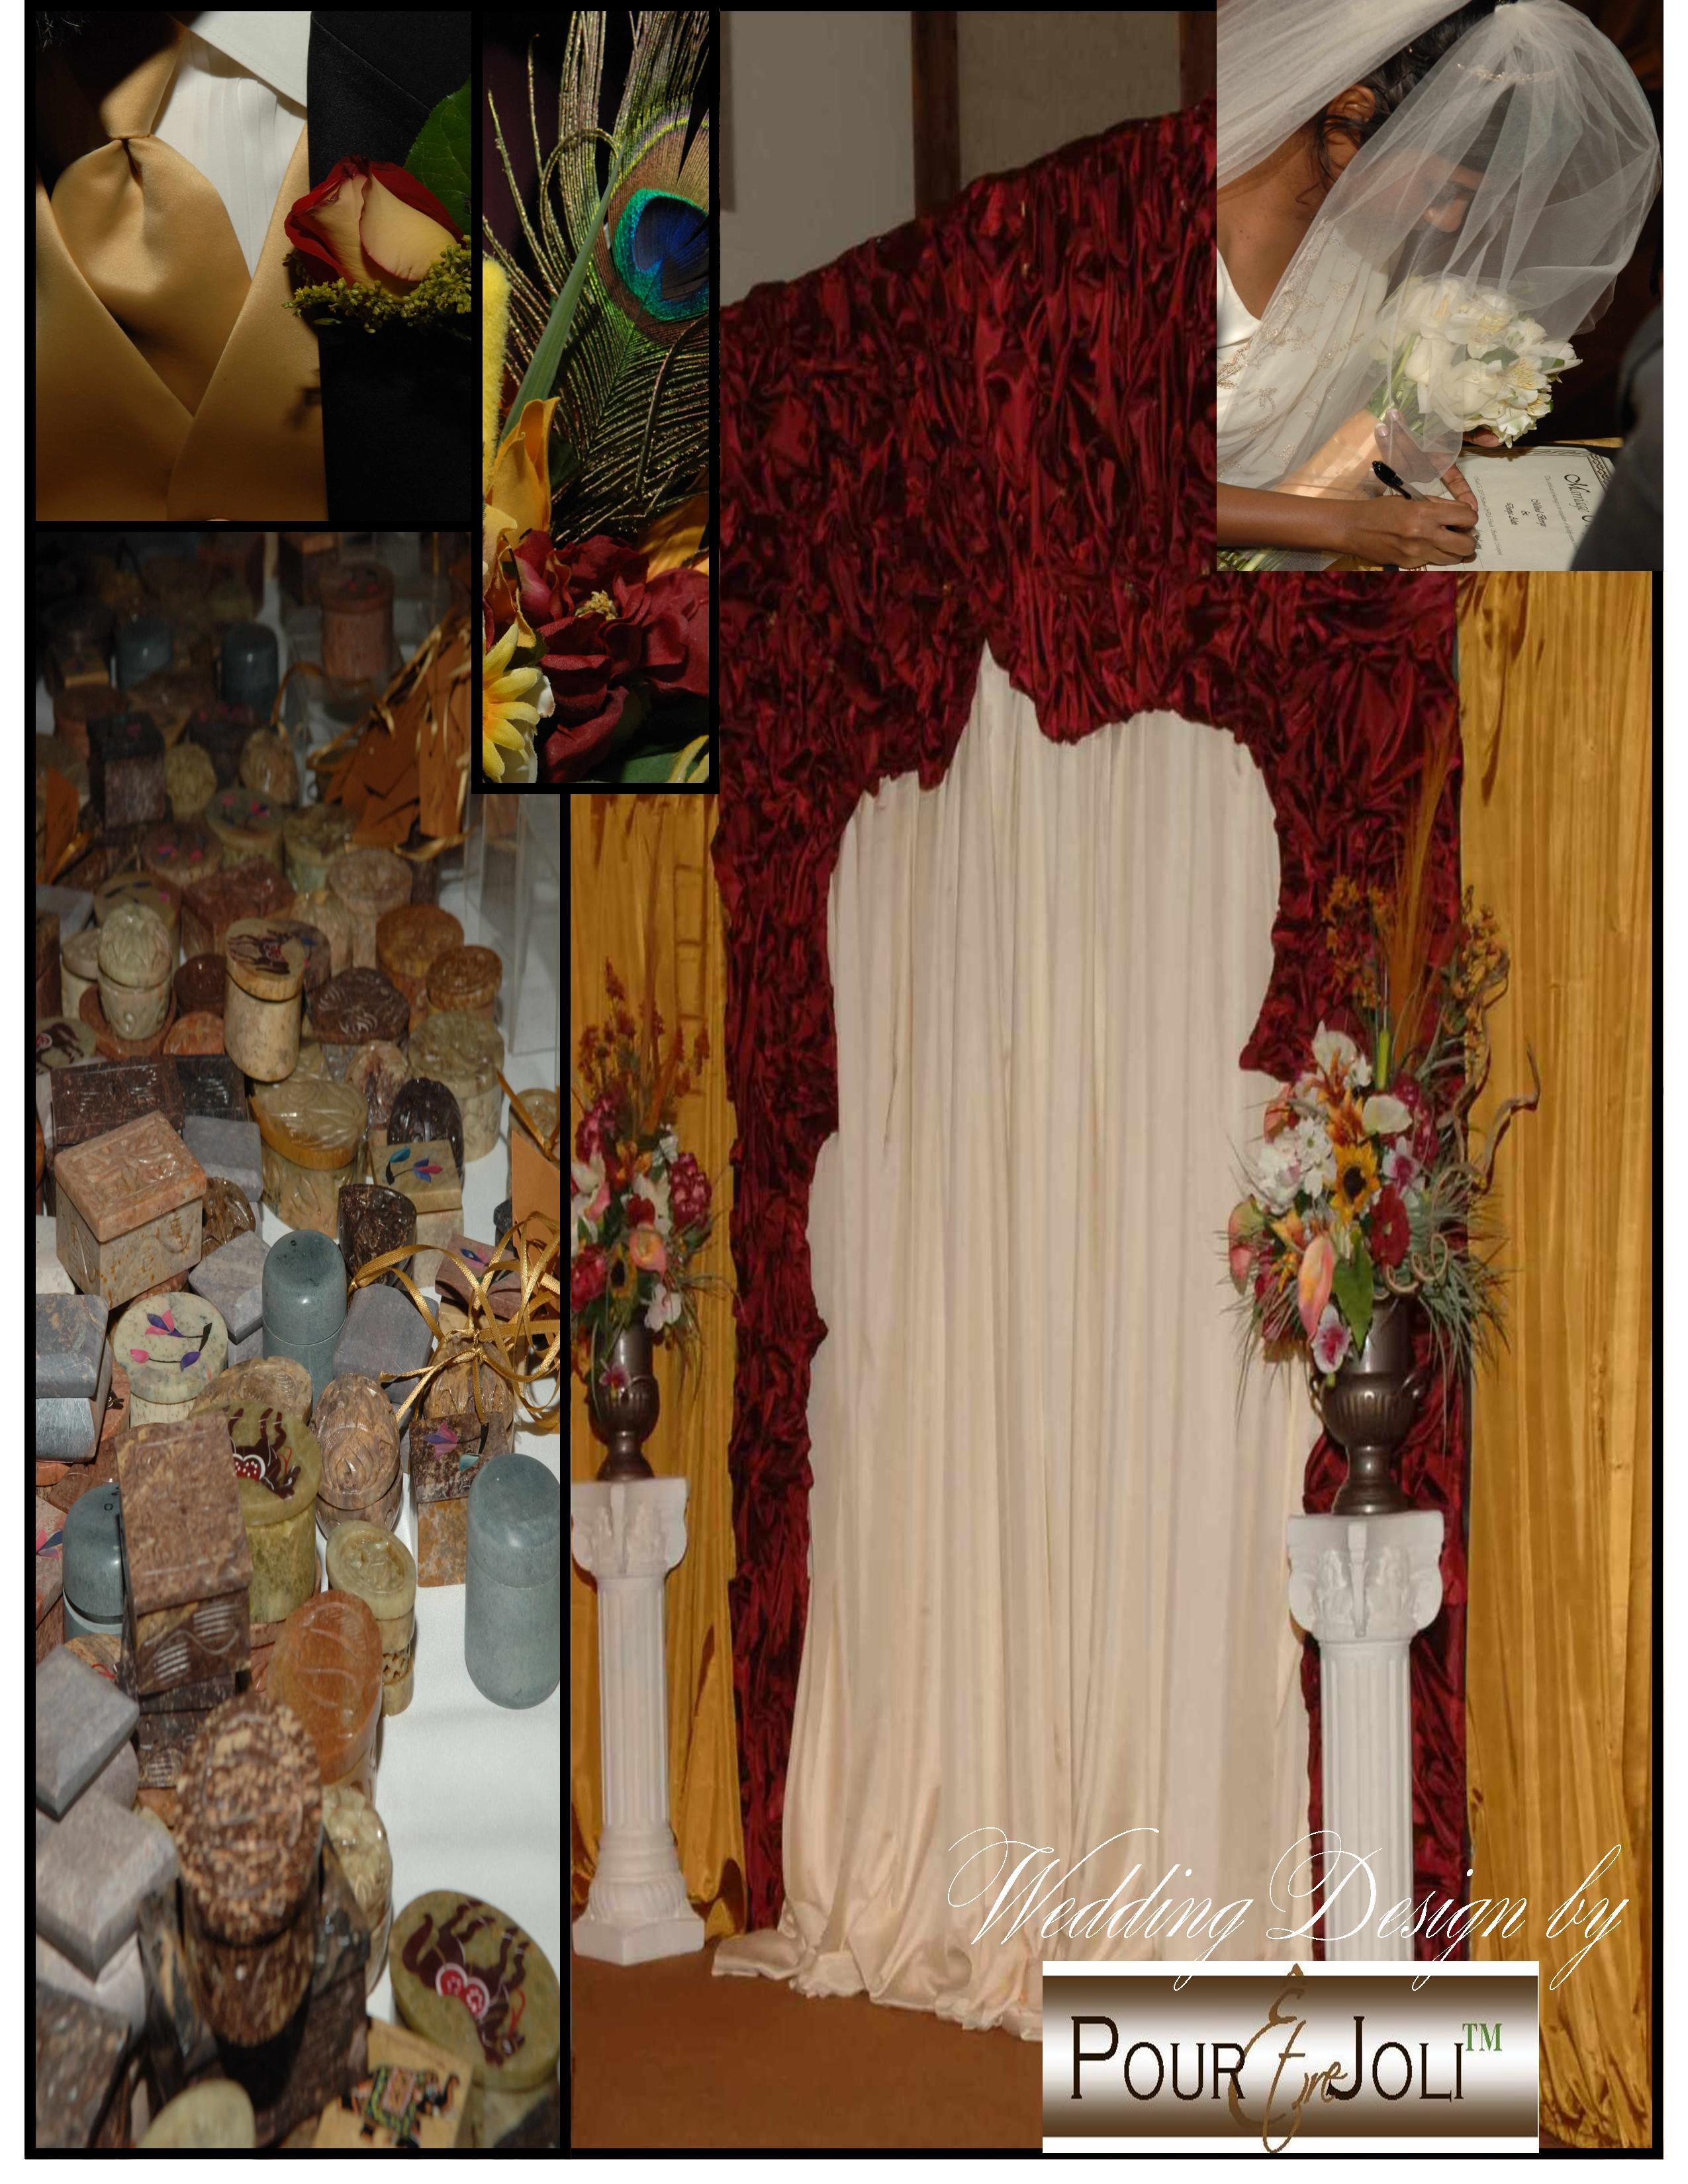 Ceremony, Flowers & Decor, Decor, Wedding, Design, Indian, Pour etre joli, Culture